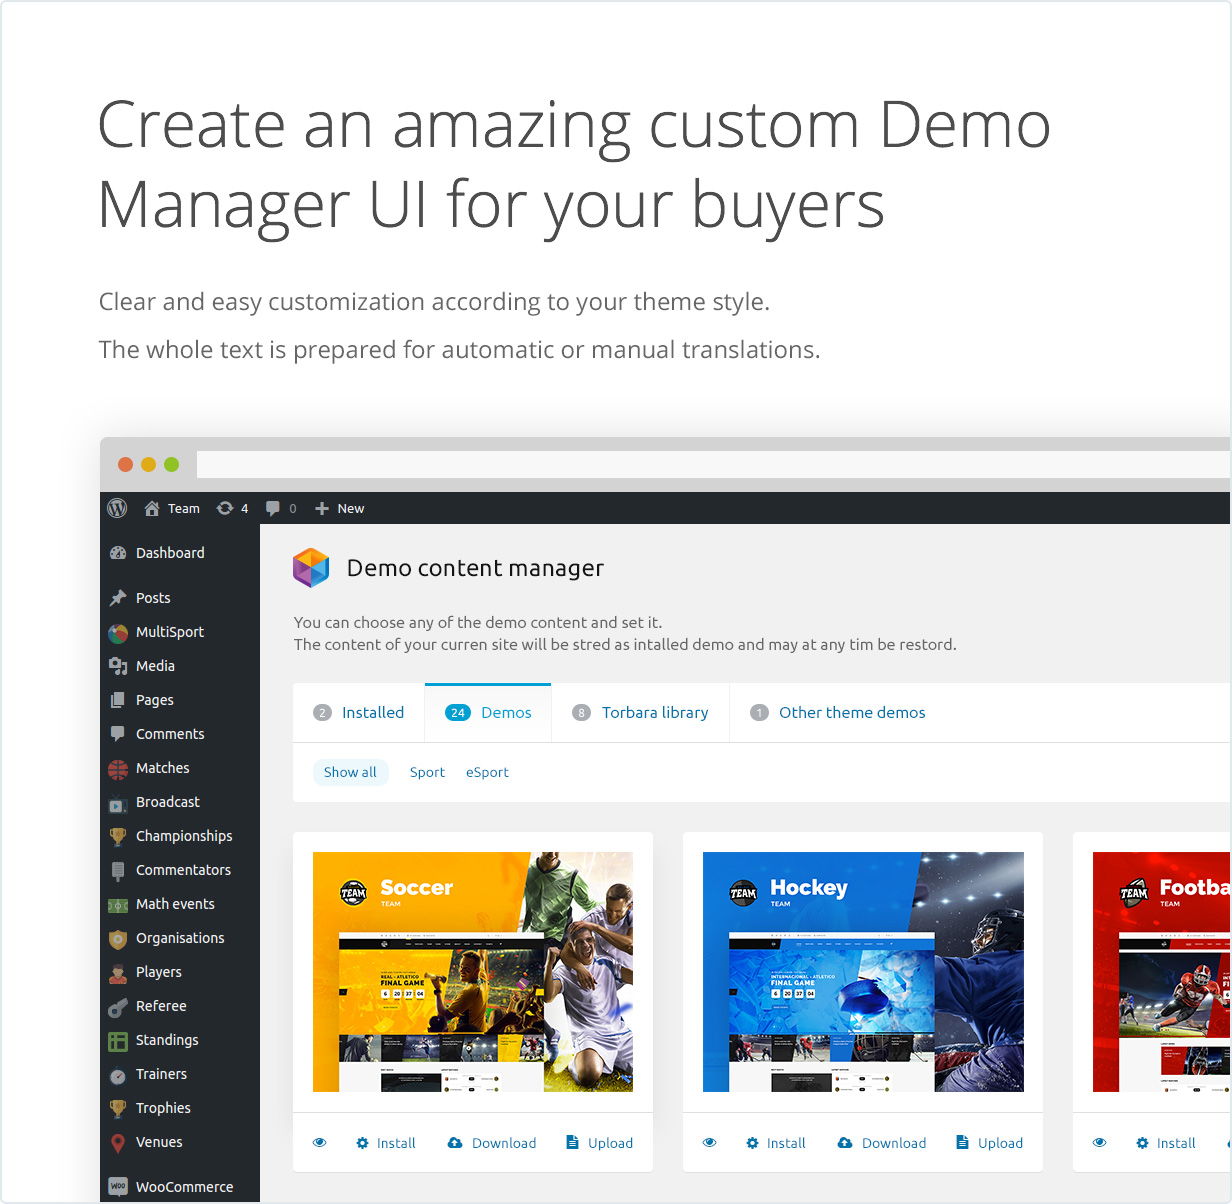 Create an amazing custom Demo Manager UI for your buyers